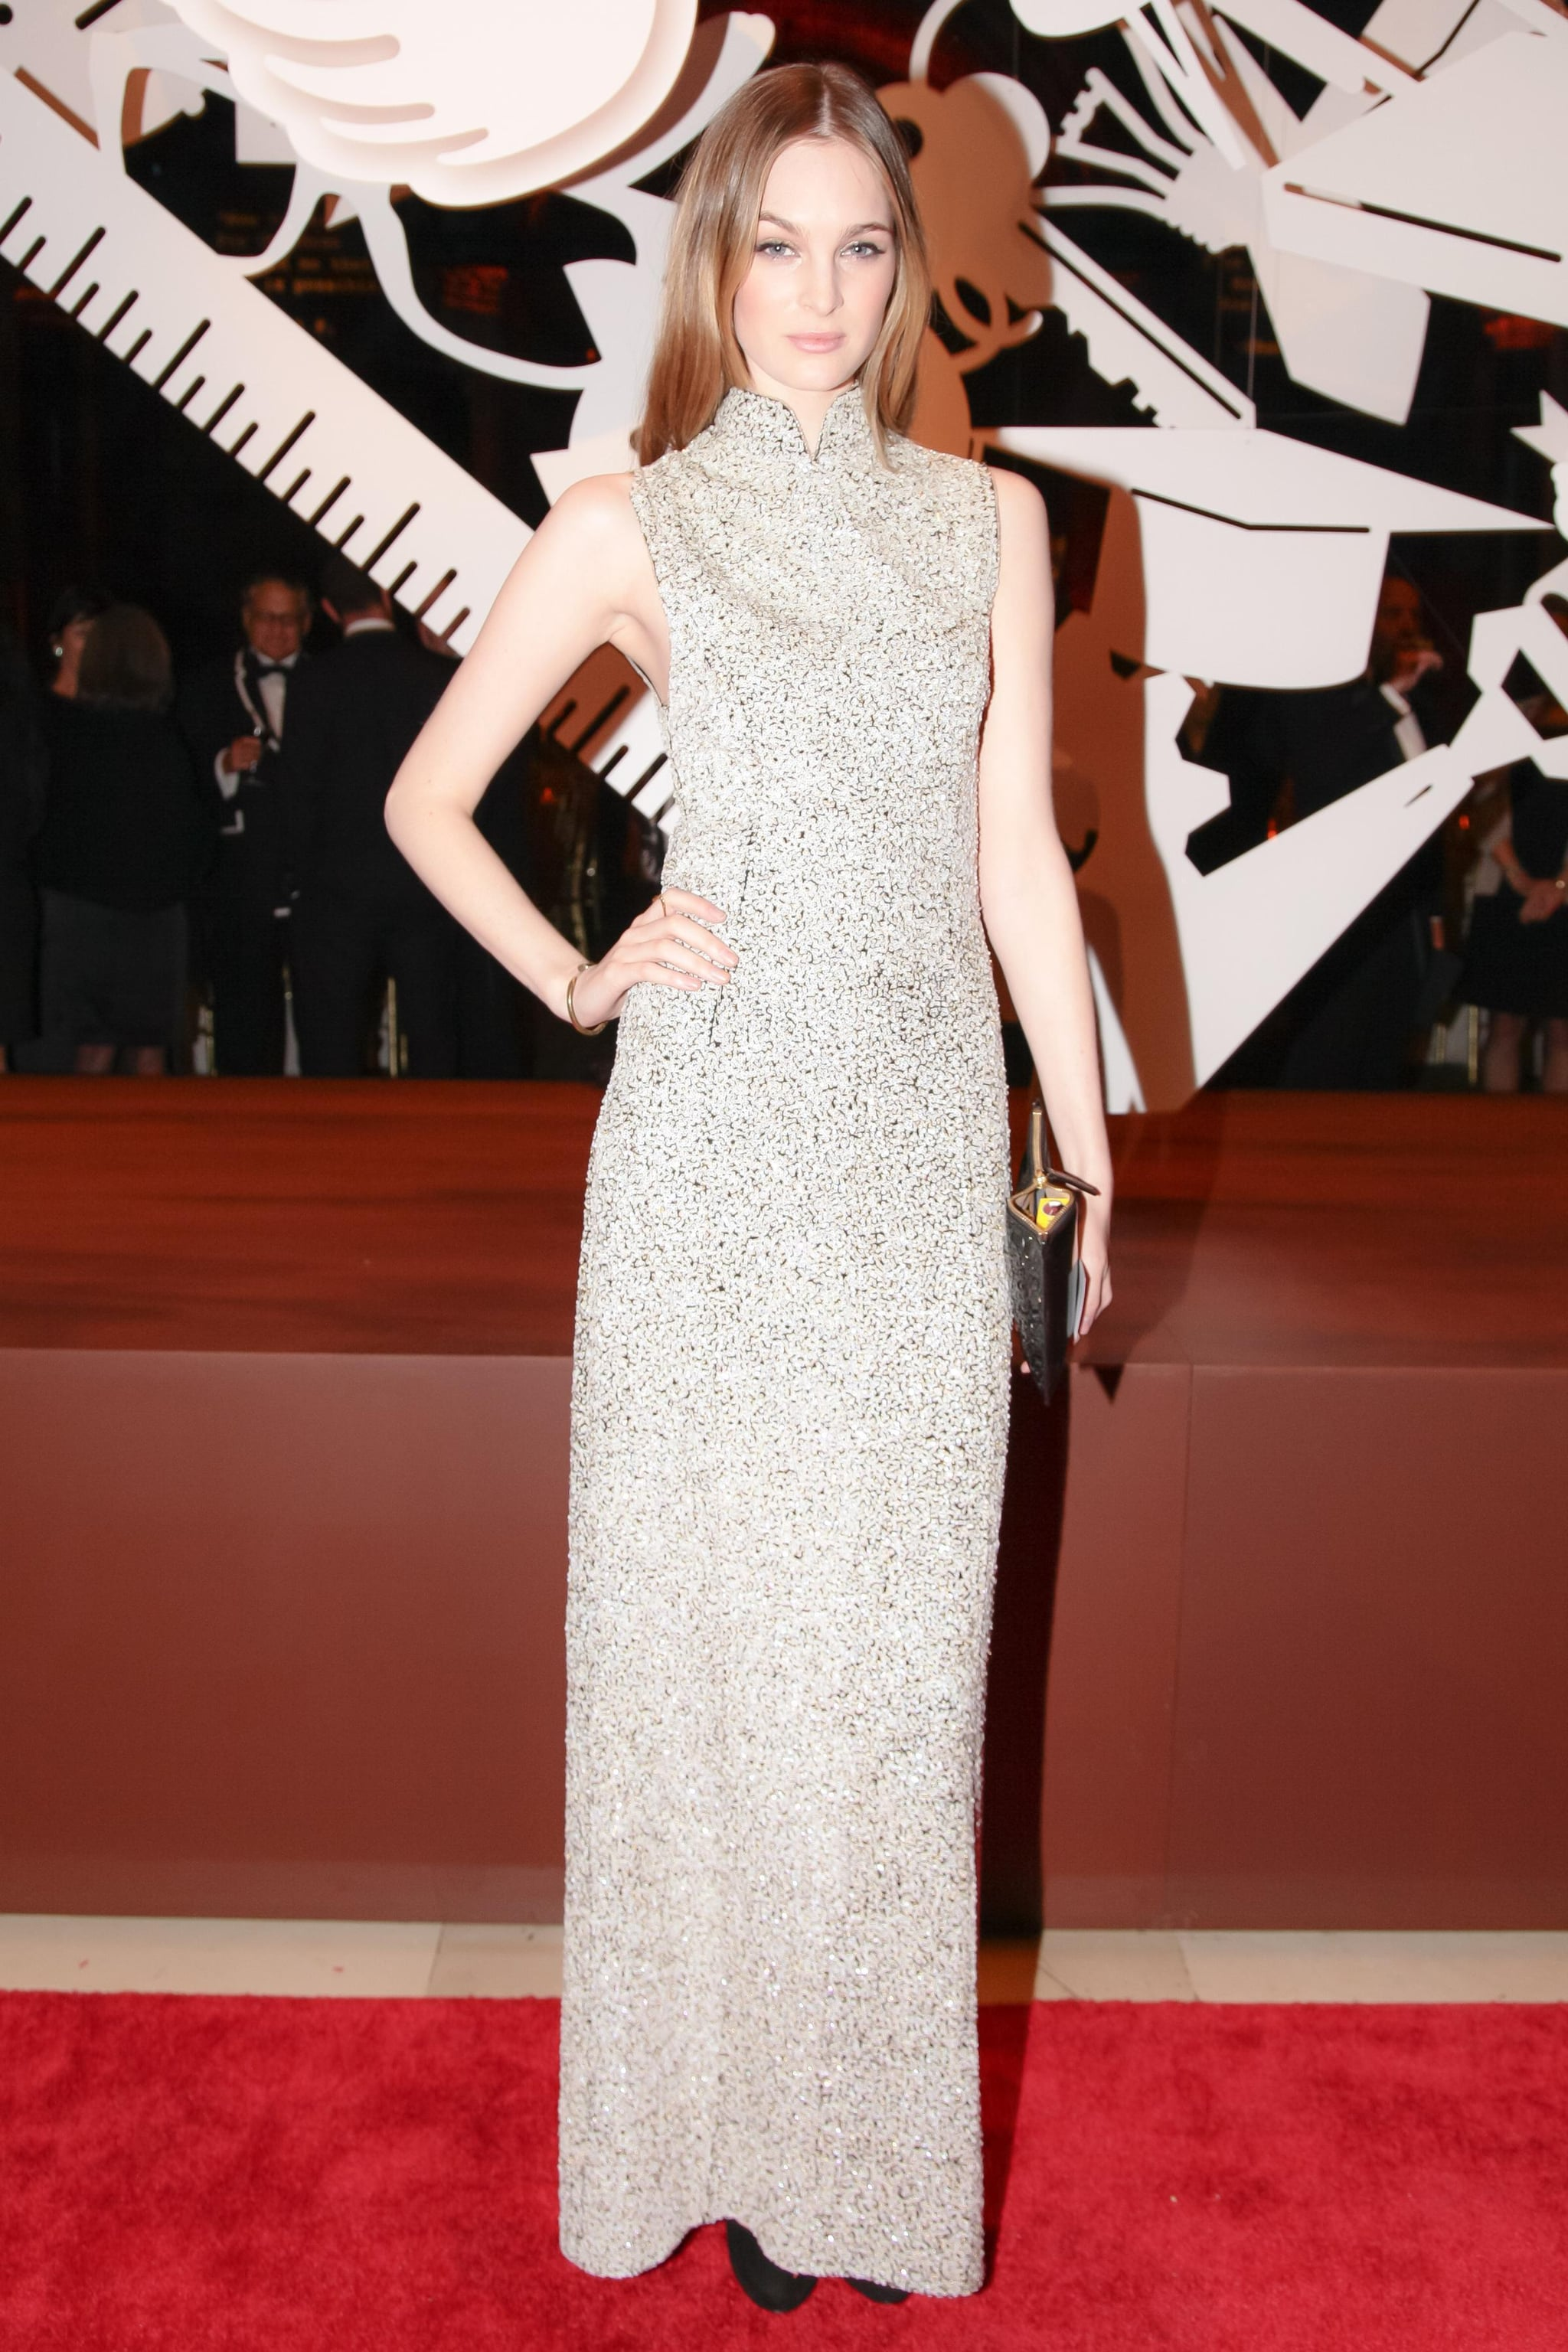 Laura Love was a golden girl at the New Yorkers for Children annual event.